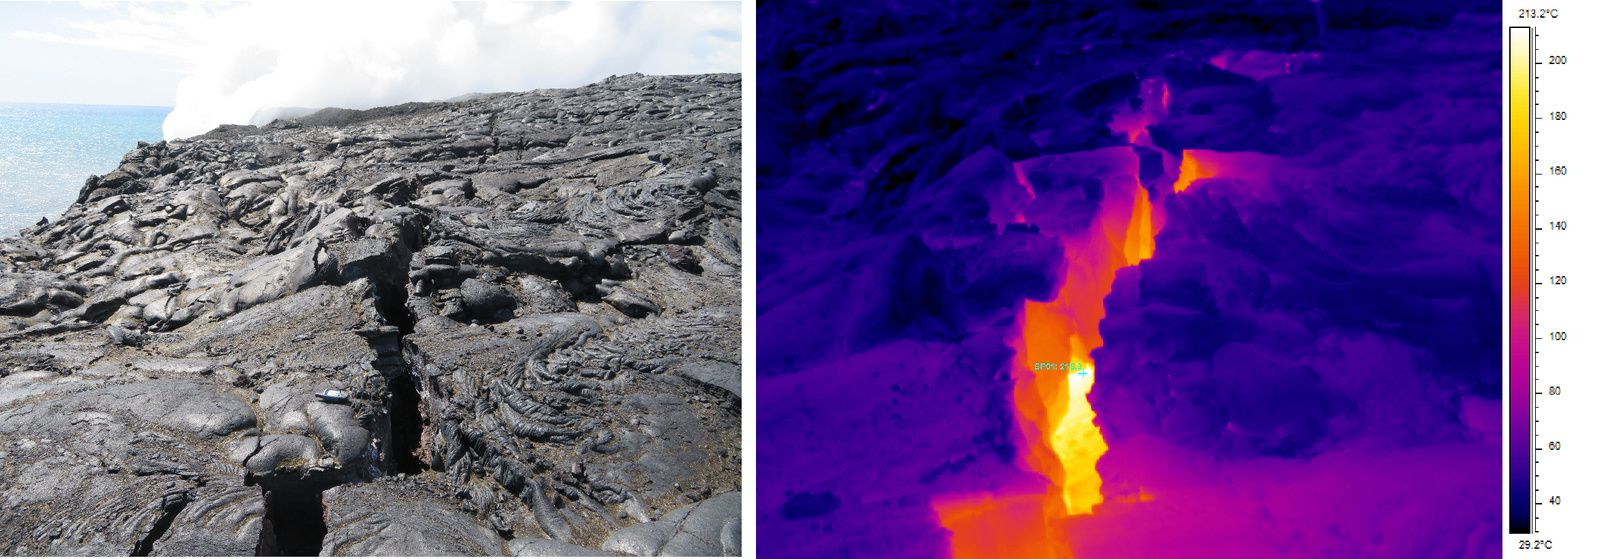 Hawaii casting 61 g - eastern end of the crack of the cliff&#x3B; The temperature measured at the thermal camera approaches 220 ° C - a click to enlarge - doc. HVO